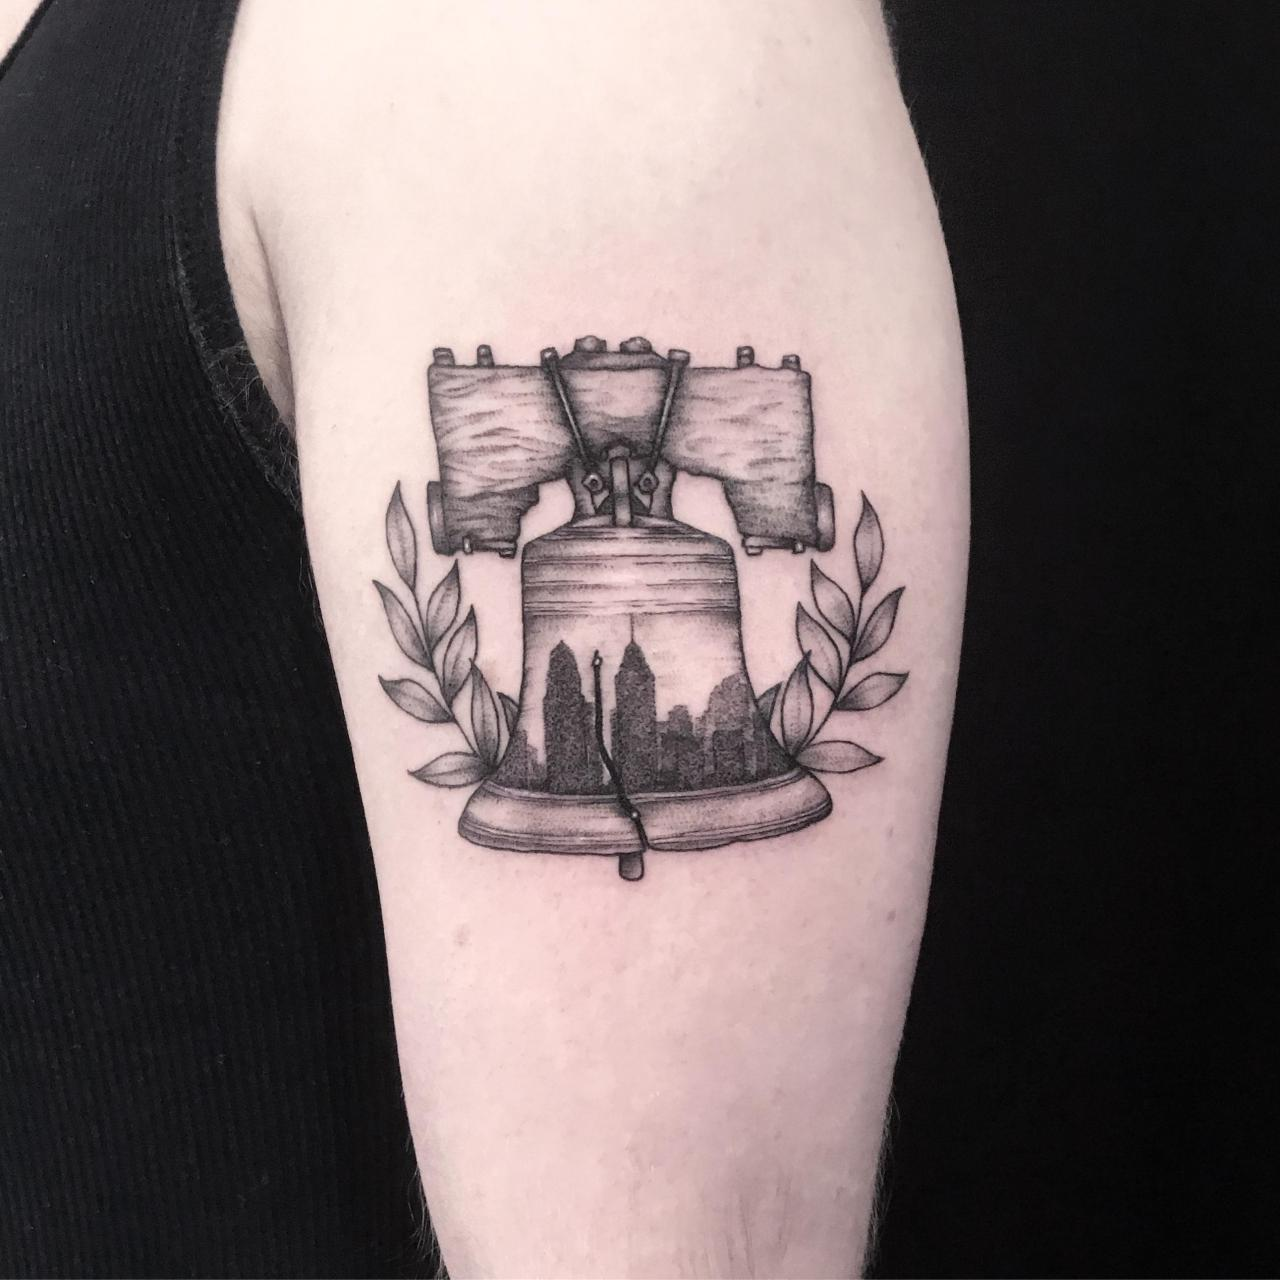 Got my city pride on my arm this past week. By Alexis Fish @ Third Season Tattoo in Lansdale, PA.